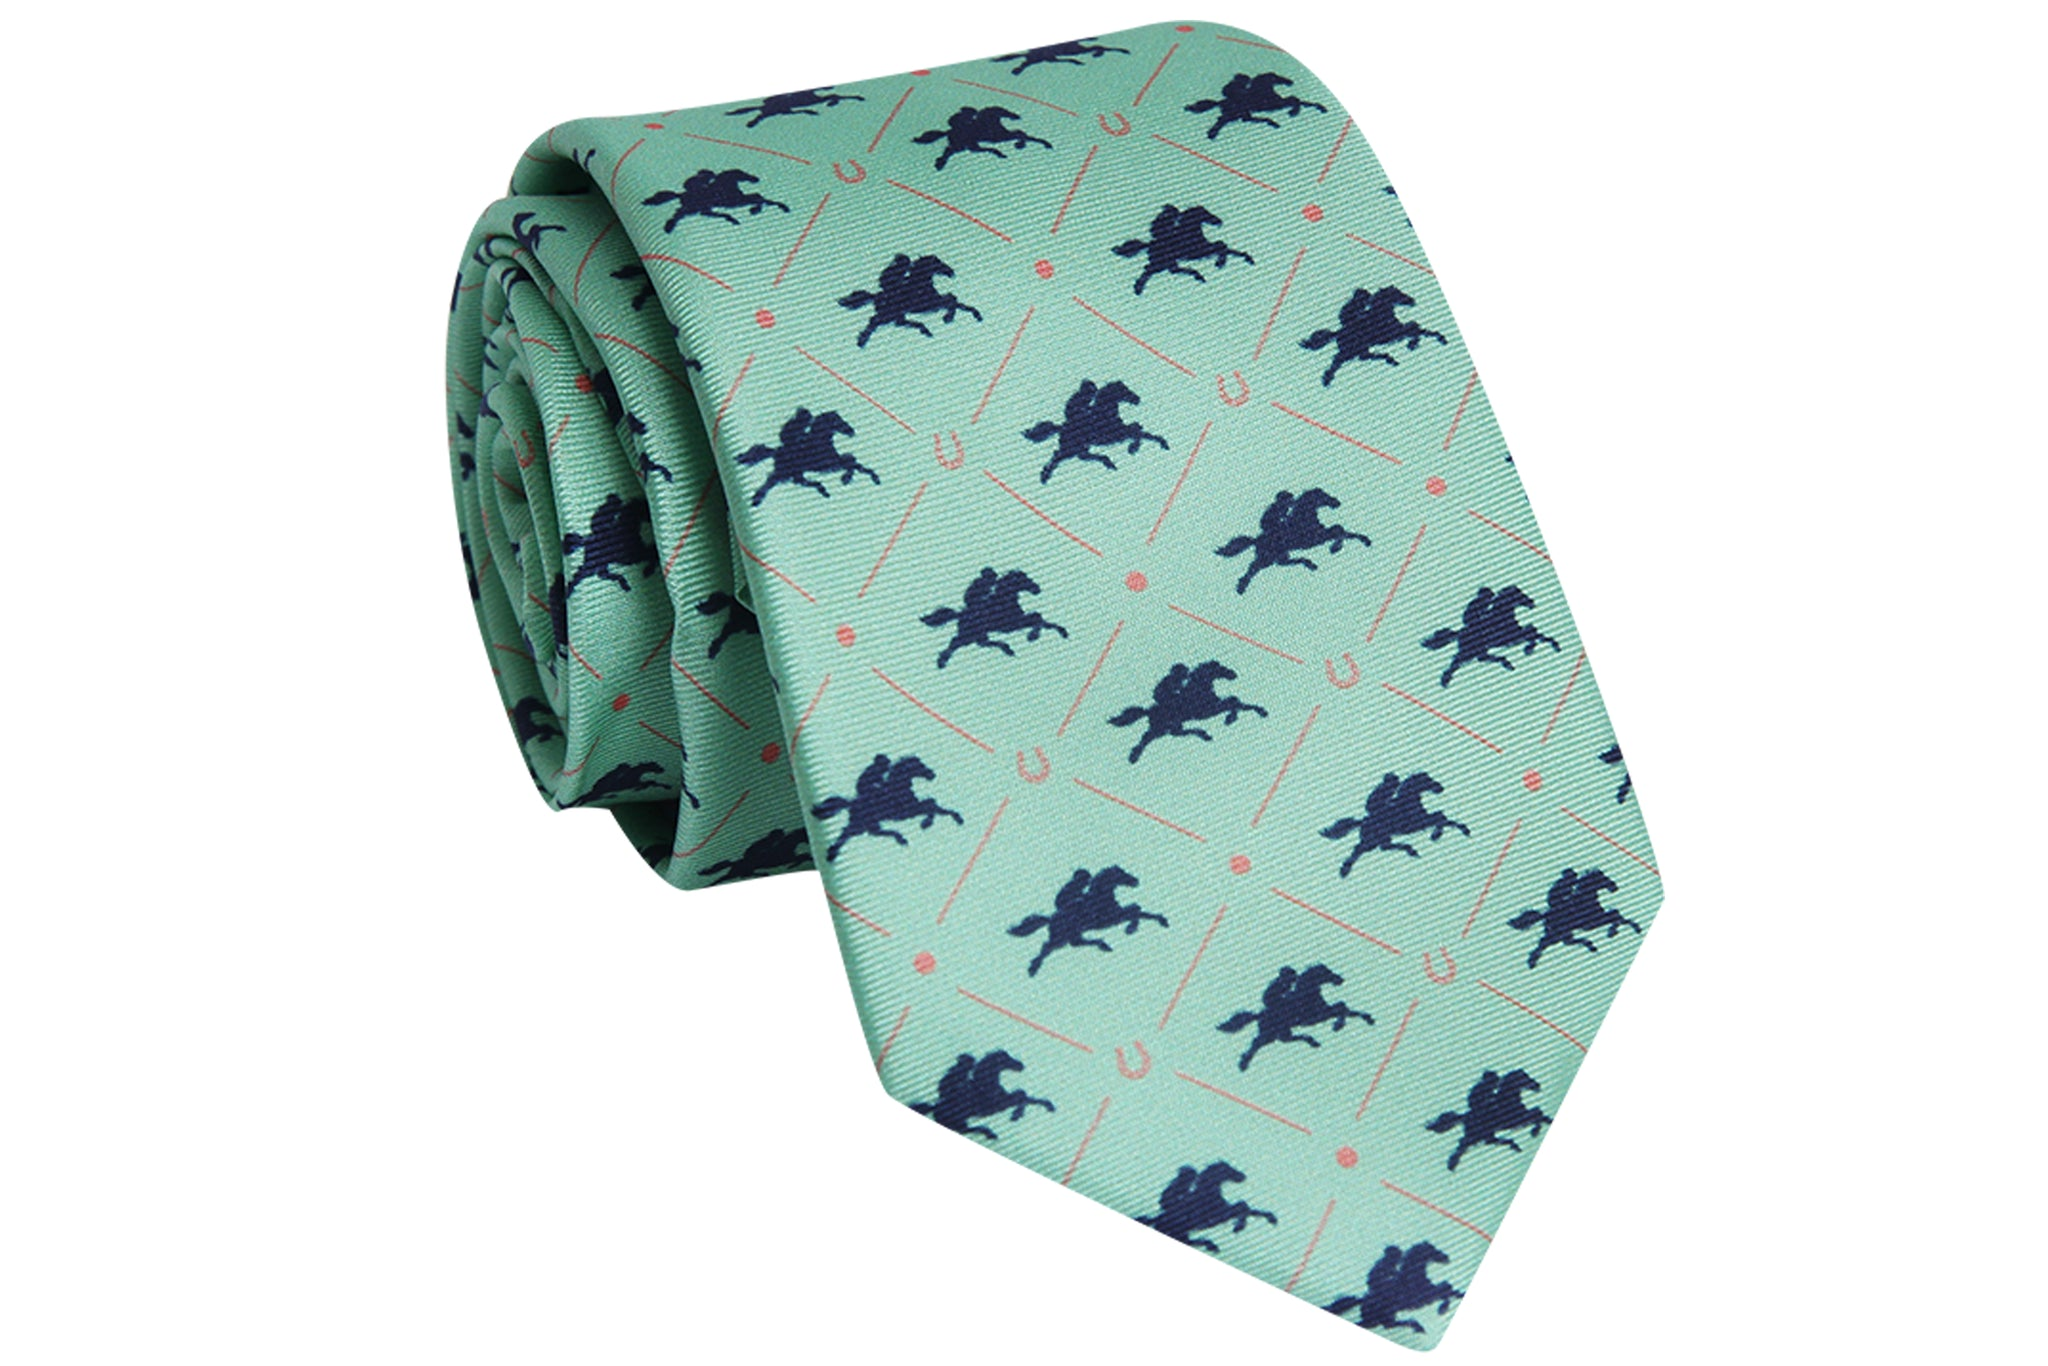 Mint Front-Runner Necktie - Barrel Down South